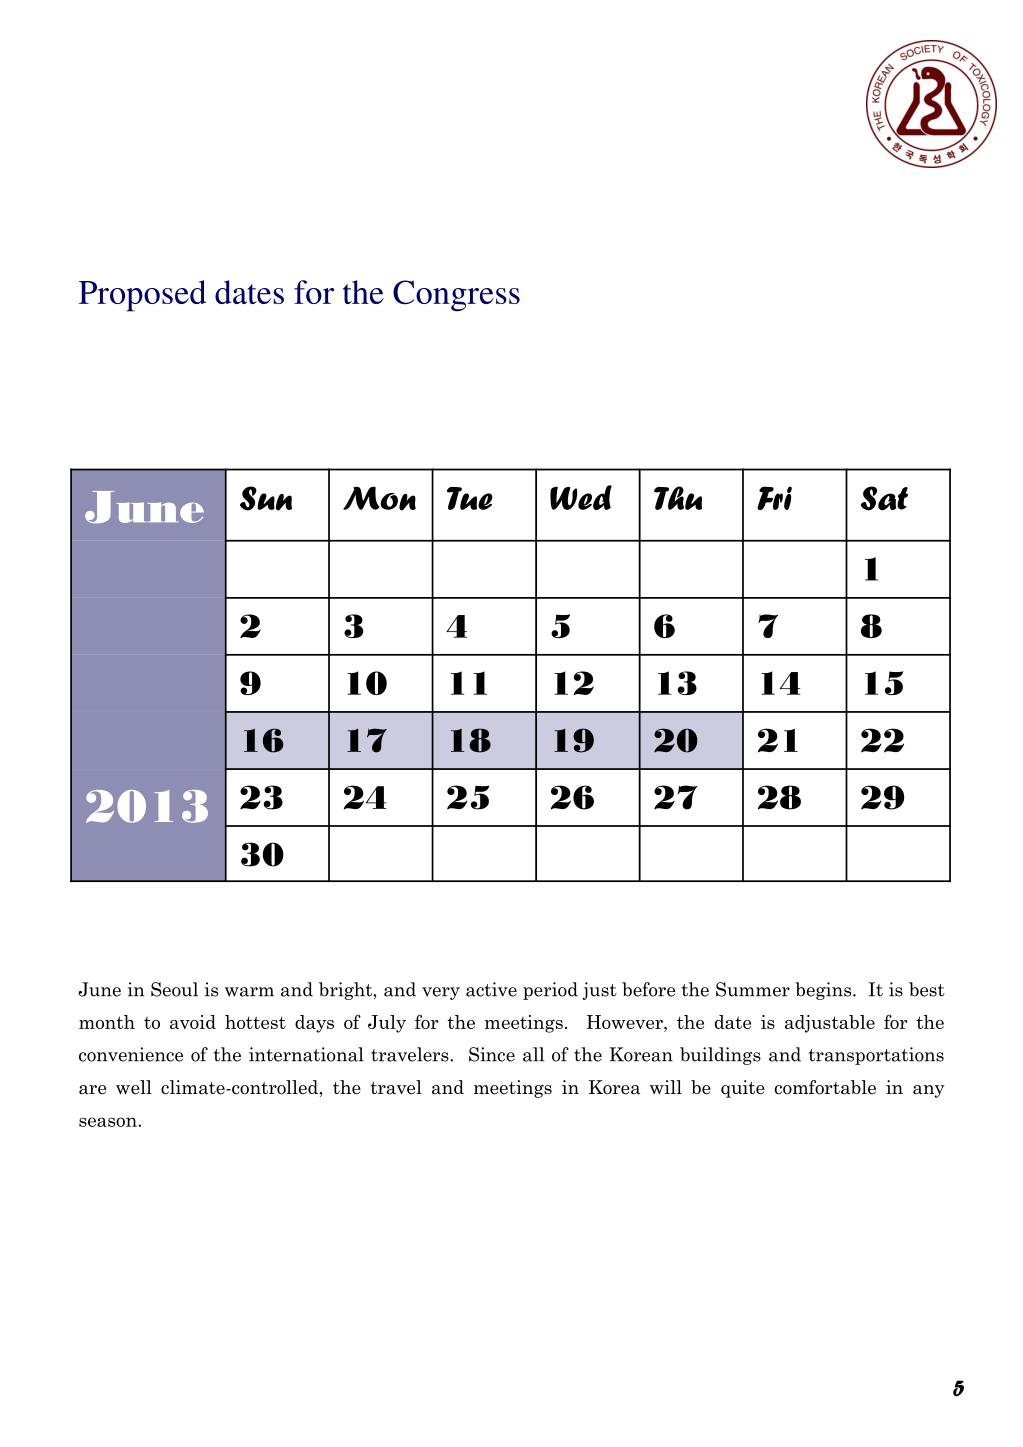 Proposed dates for the Congress